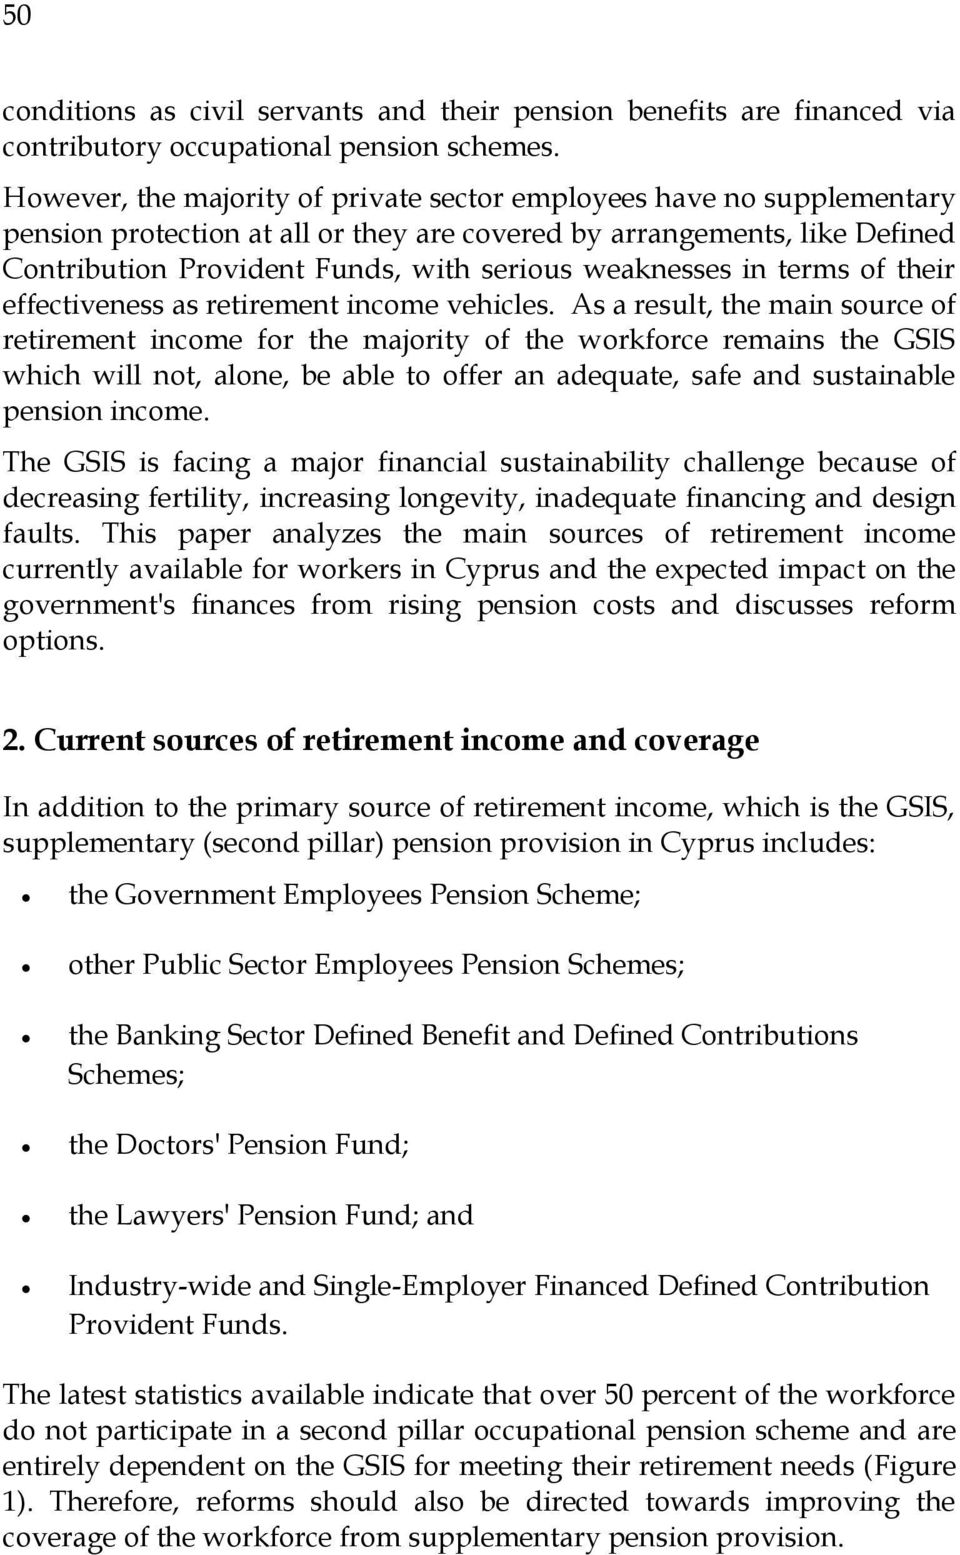 weaknesses in terms of their effectiveness as retirement income vehicles.